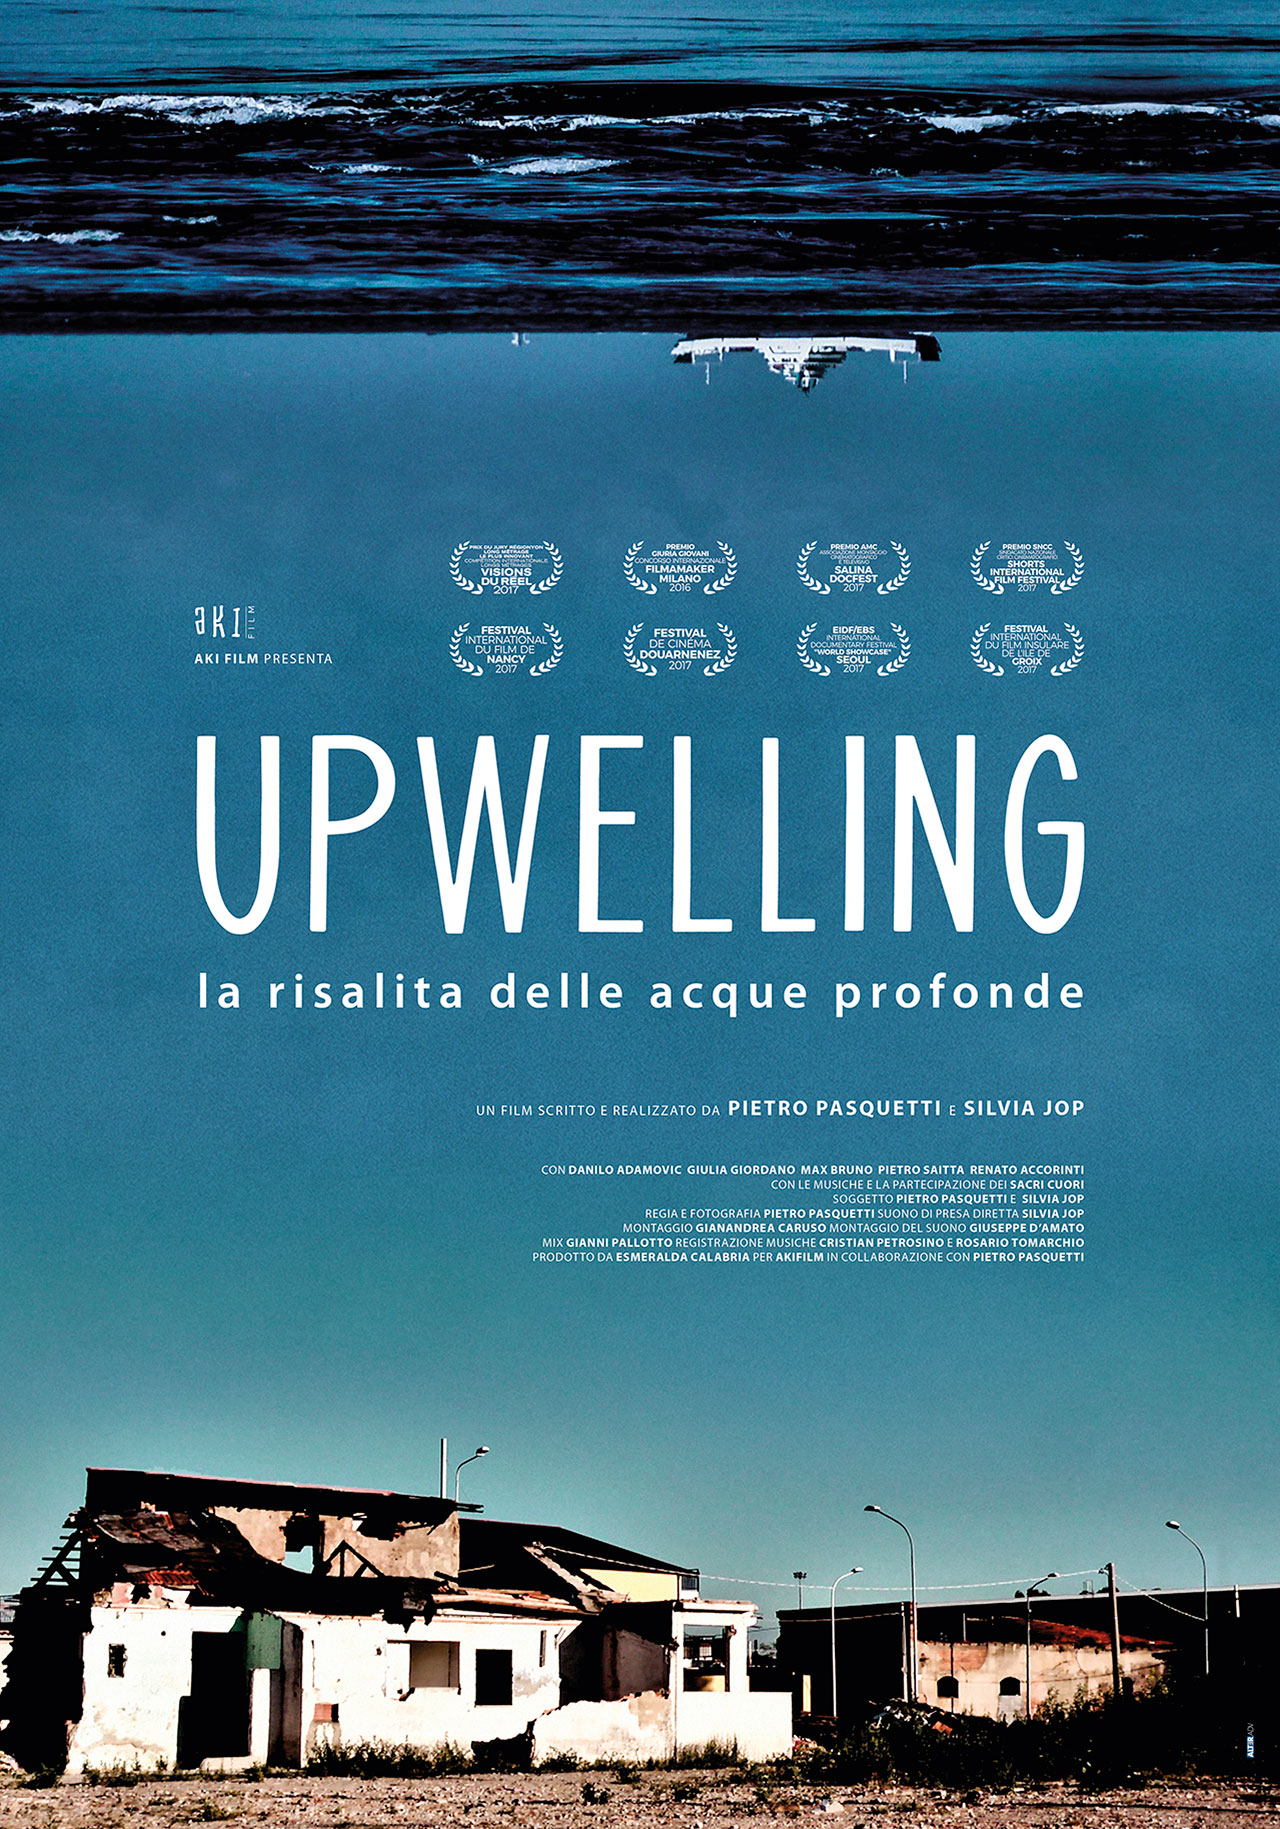 Upwelling_Poster_03_2018